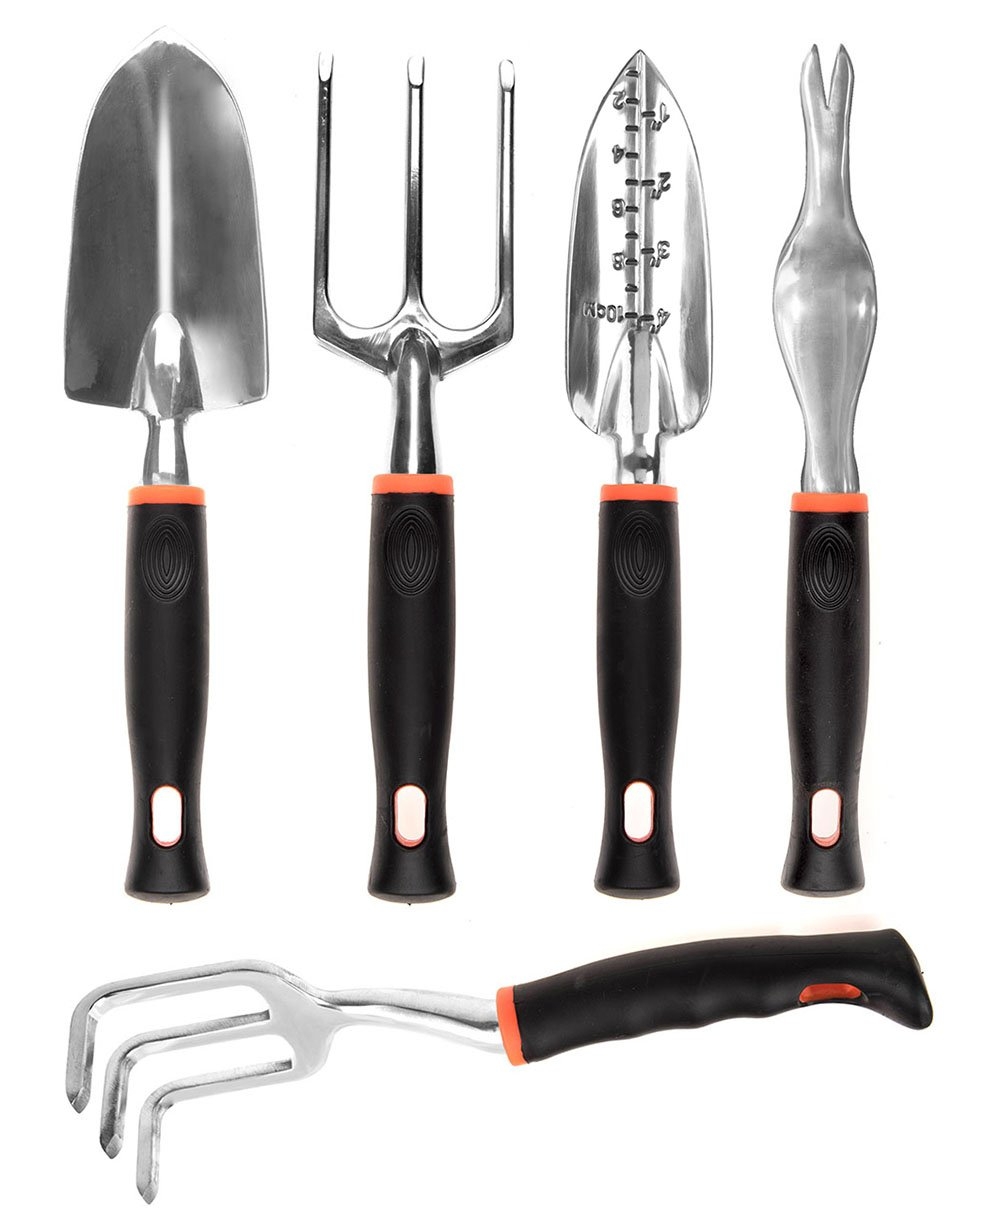 CIELCERA 5-Piece Gardening Tool Set with Gift Box, Ideal Gardening Gift Includes Garden Trowel, Transplanting Trowel, Cultivator, Garden Fork, and Weeder, The Right Partner for Your Gardening